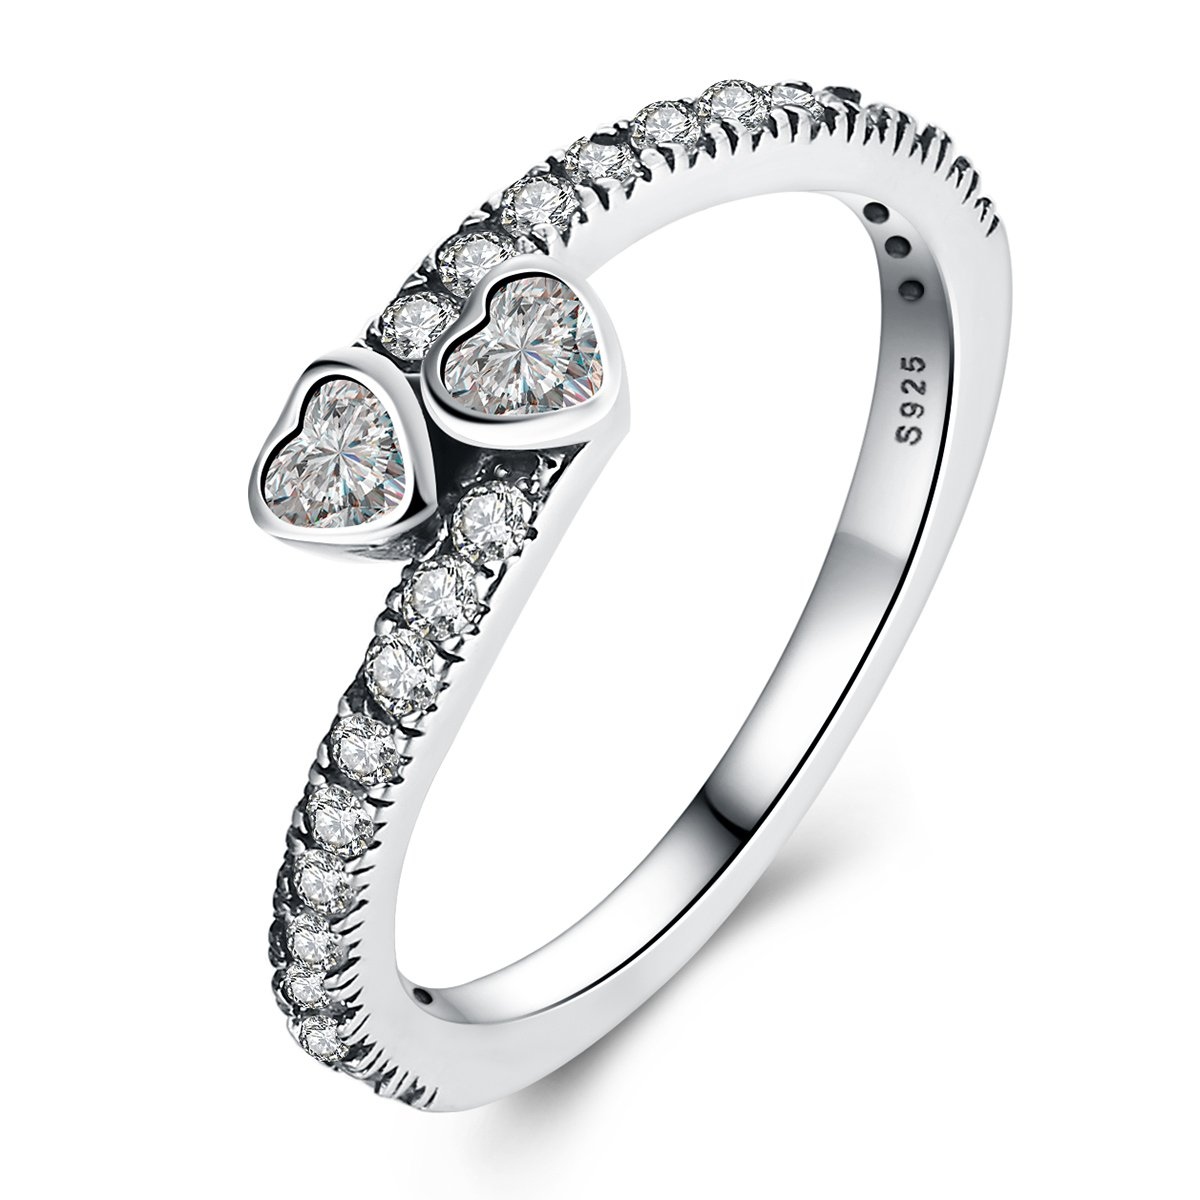 The Kiss Forever Hearts 925 Sterling Silver Engagement Ring, Clear CZ